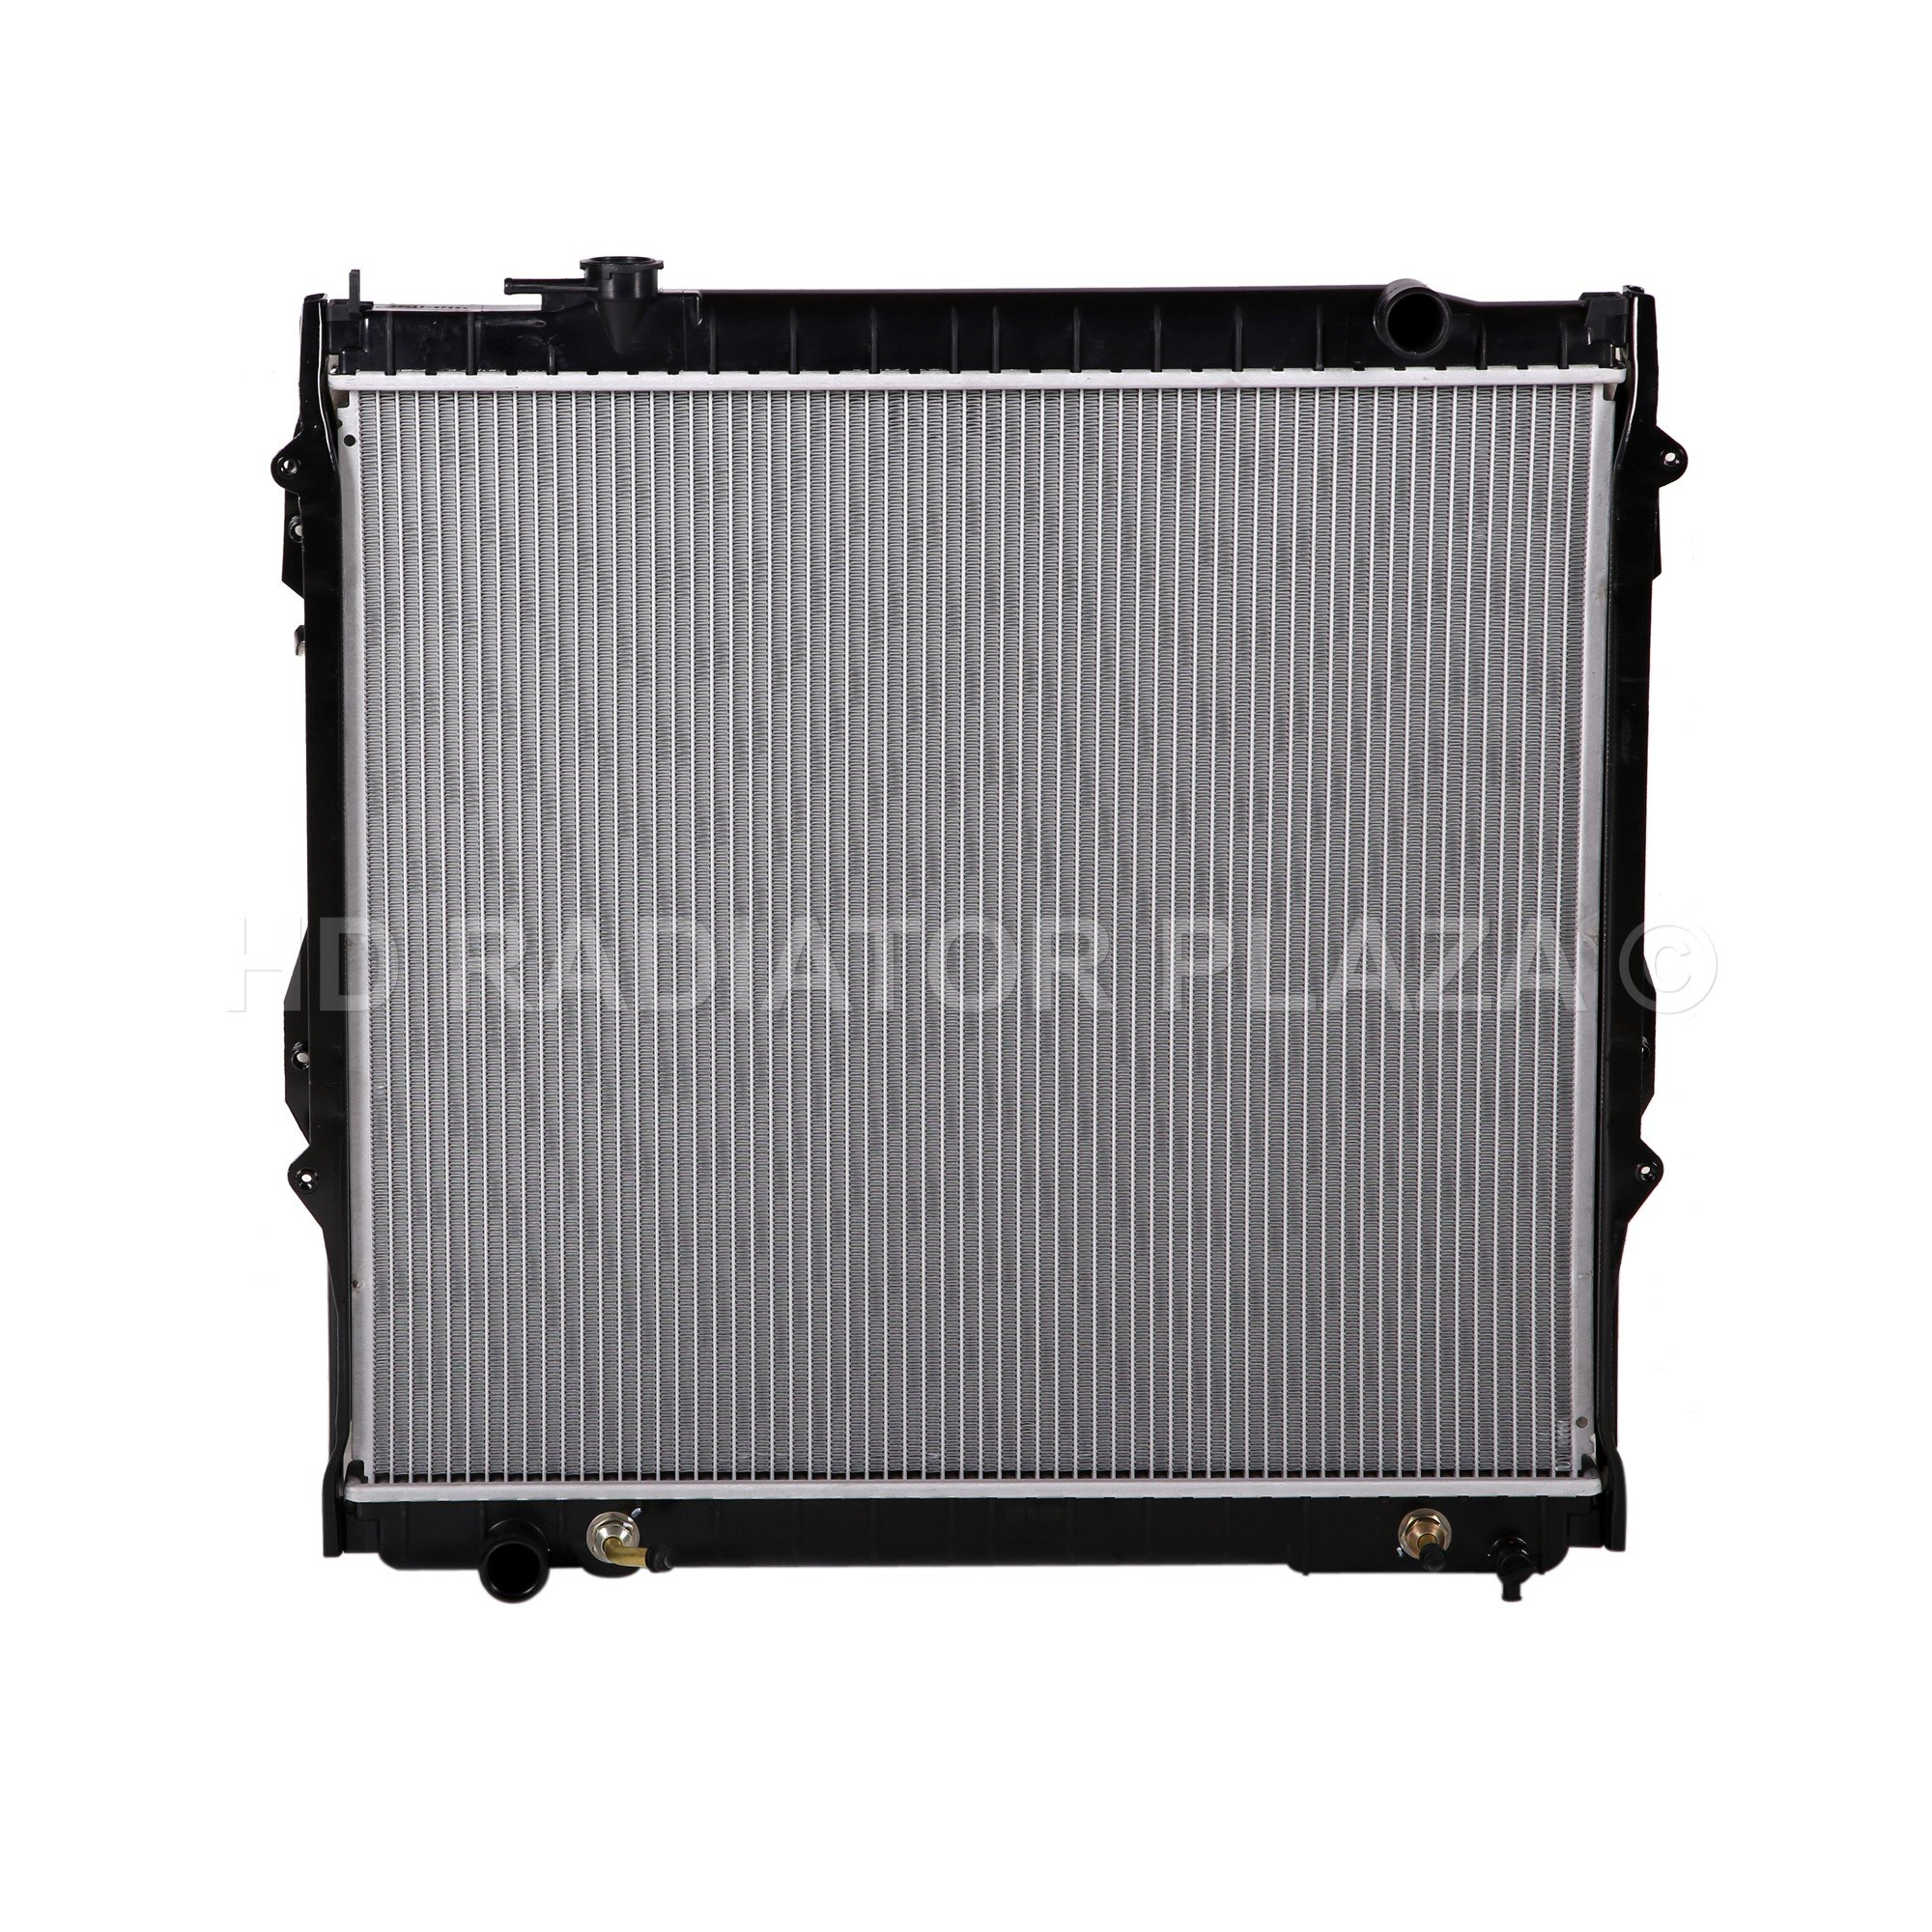 Radiator for 95-04 Toyota Tacoma